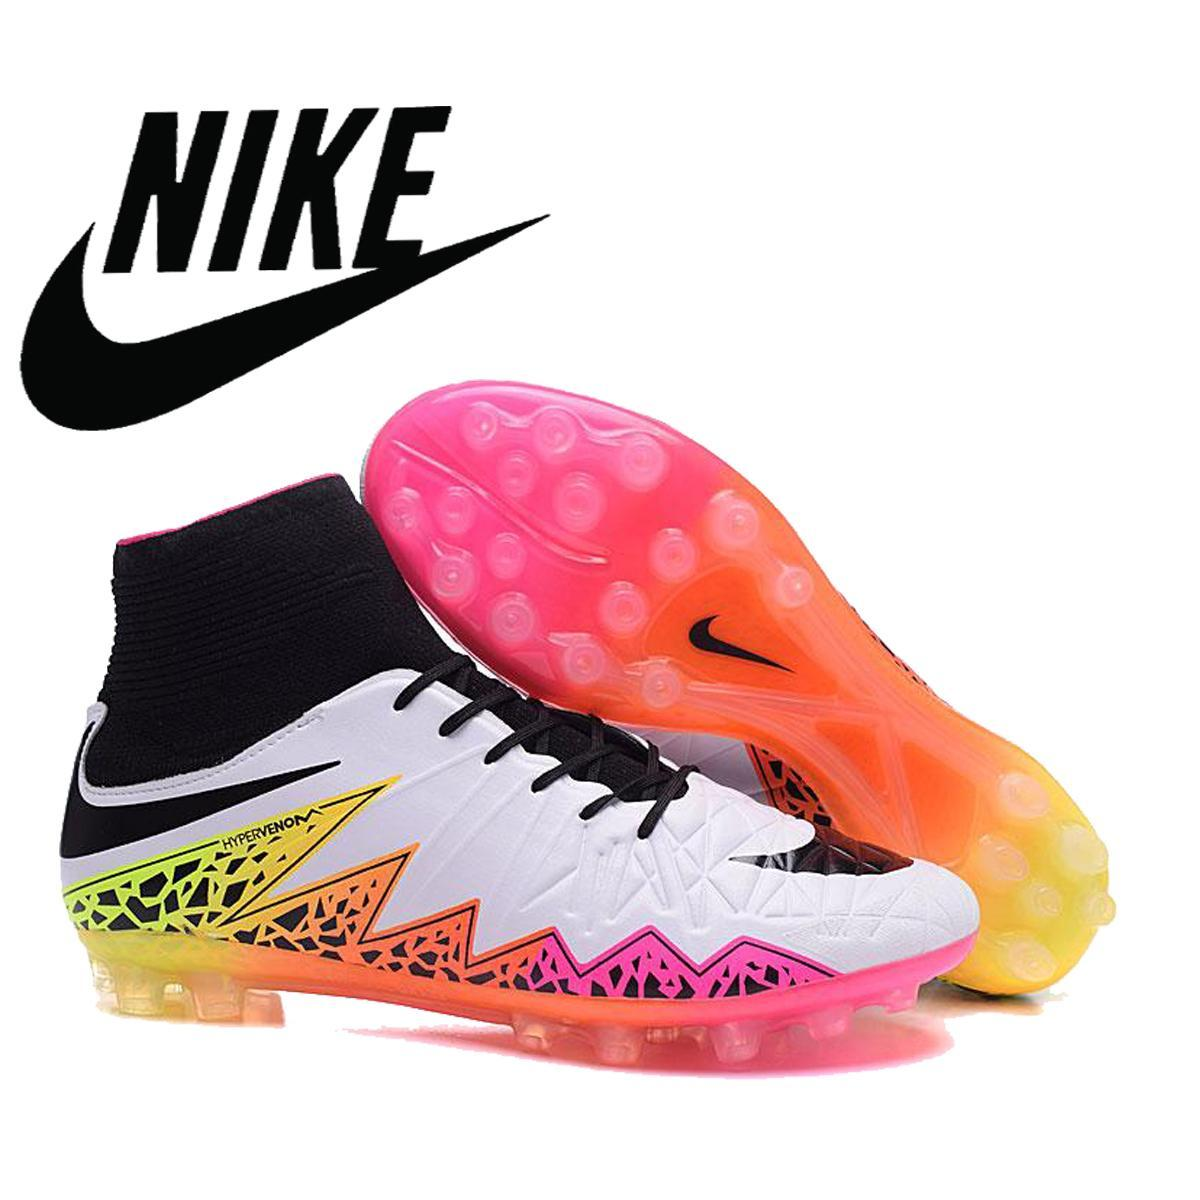 2019 Nike Hypervenom Phantom Ii Fg Soccer Cleats With Acc ...